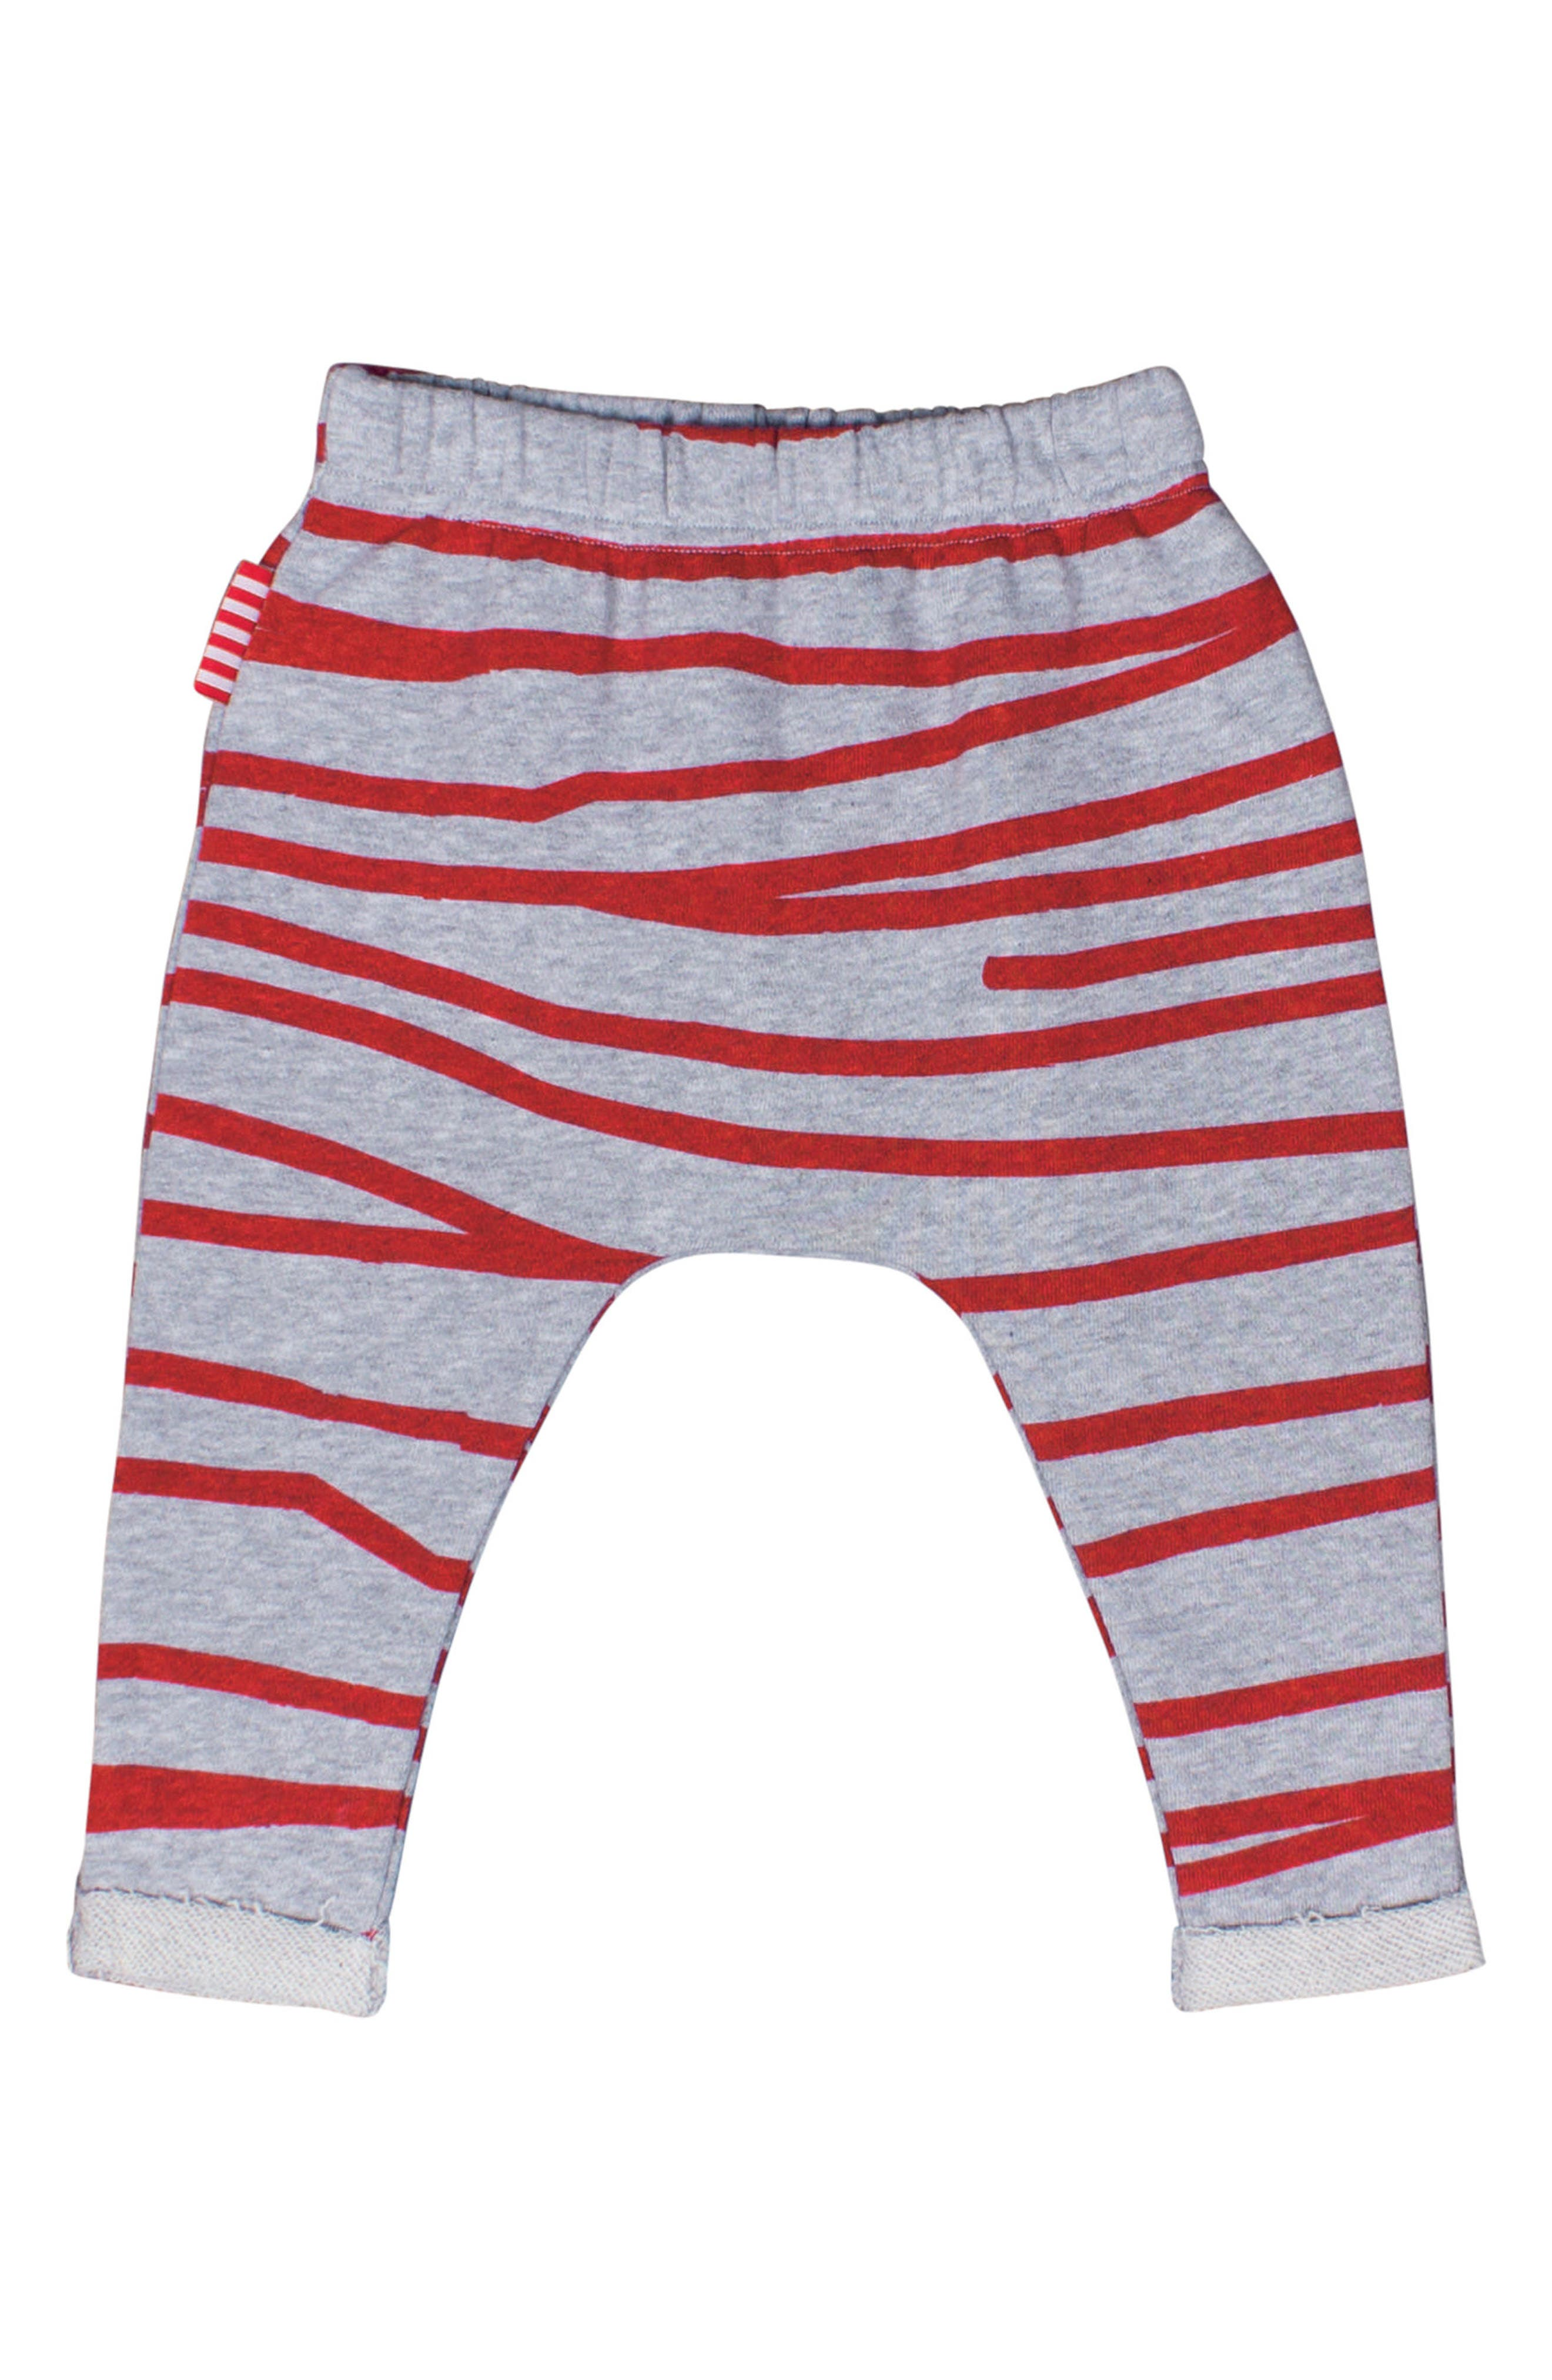 Stripe Jogger Pants,                             Main thumbnail 1, color,                             035